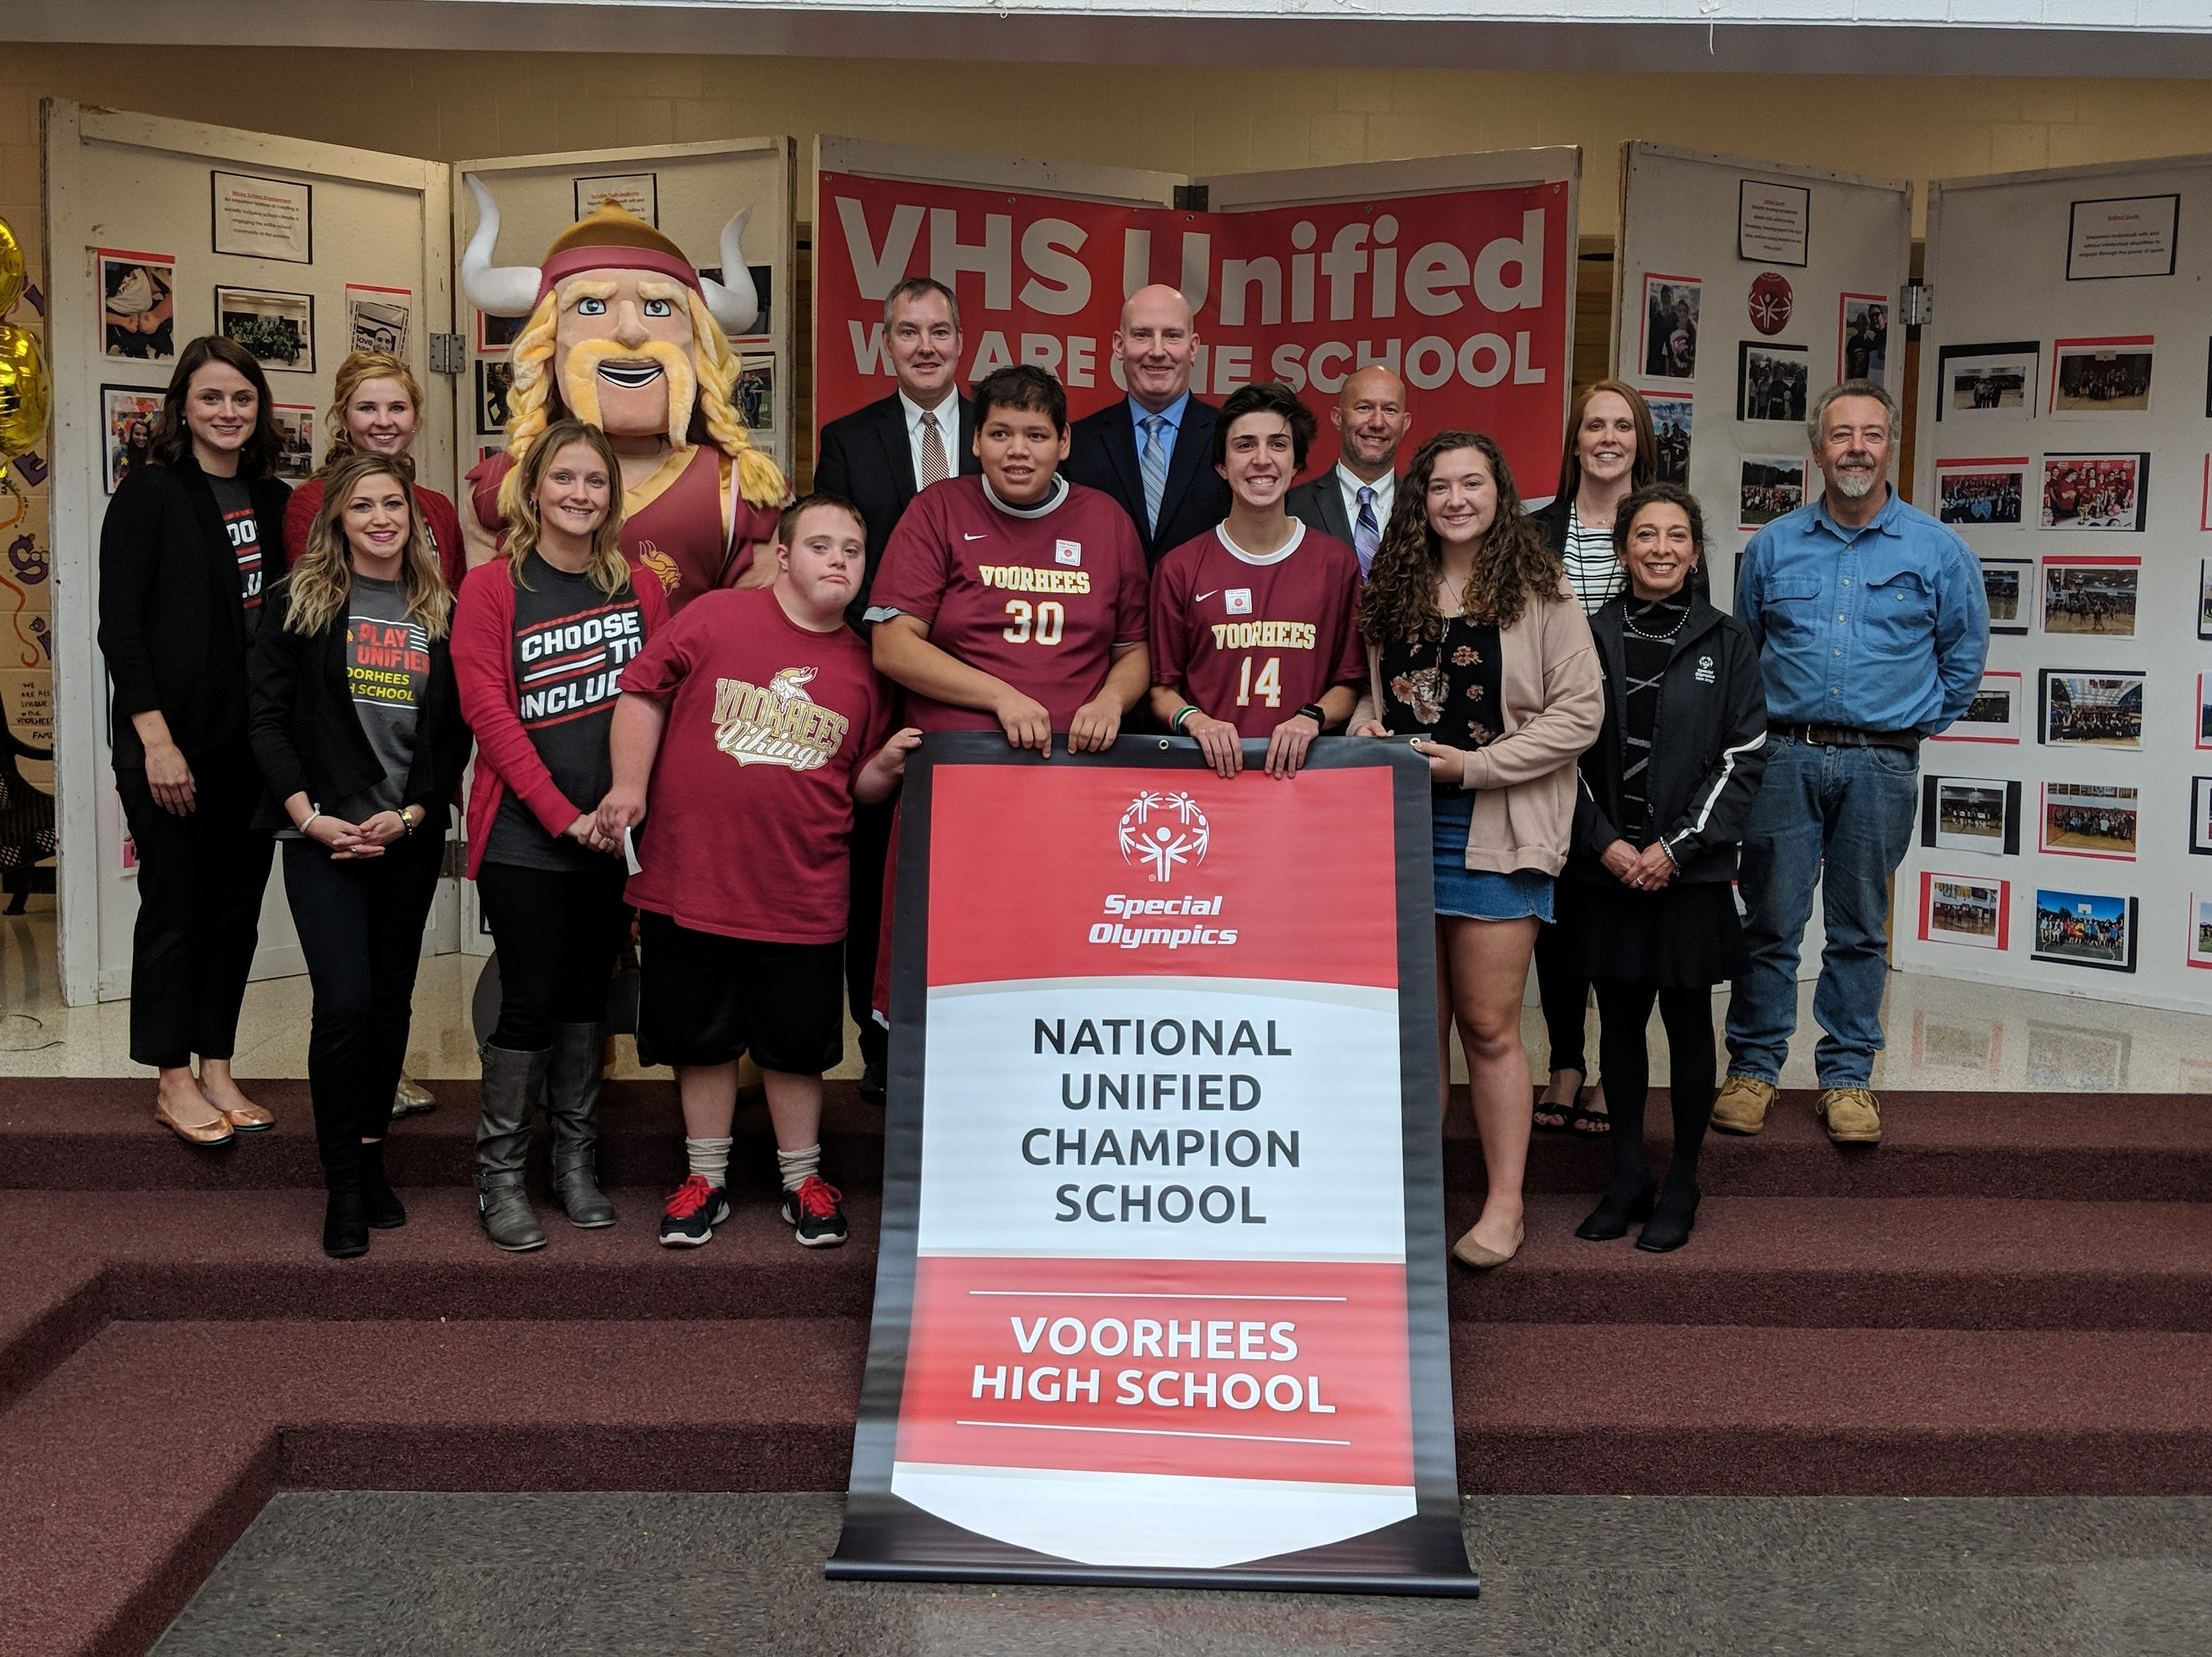 With banner, back row (L-R): Kaitlyn Collins, Sarah Cummins, Viktor the Viking, Superintendent Jeff Bender, Voorhees Principal Ron Peterson, Asst. Superintendent Rich Bergacs, Voorhees Asst. Principal Kelly Anne Kieffer, Board of Education President Francis Goger Front row (L-R): Melissa Haines, Jennifer Komoroski, Unified co-president Daniel Jordan, Unified Sports co-team captain Bruce Fujihara, Unified Sports co-team captain Alex Warner, Unified co-president Jessica Brynildsen, Susan Colacello from Special Olympics New Jersey